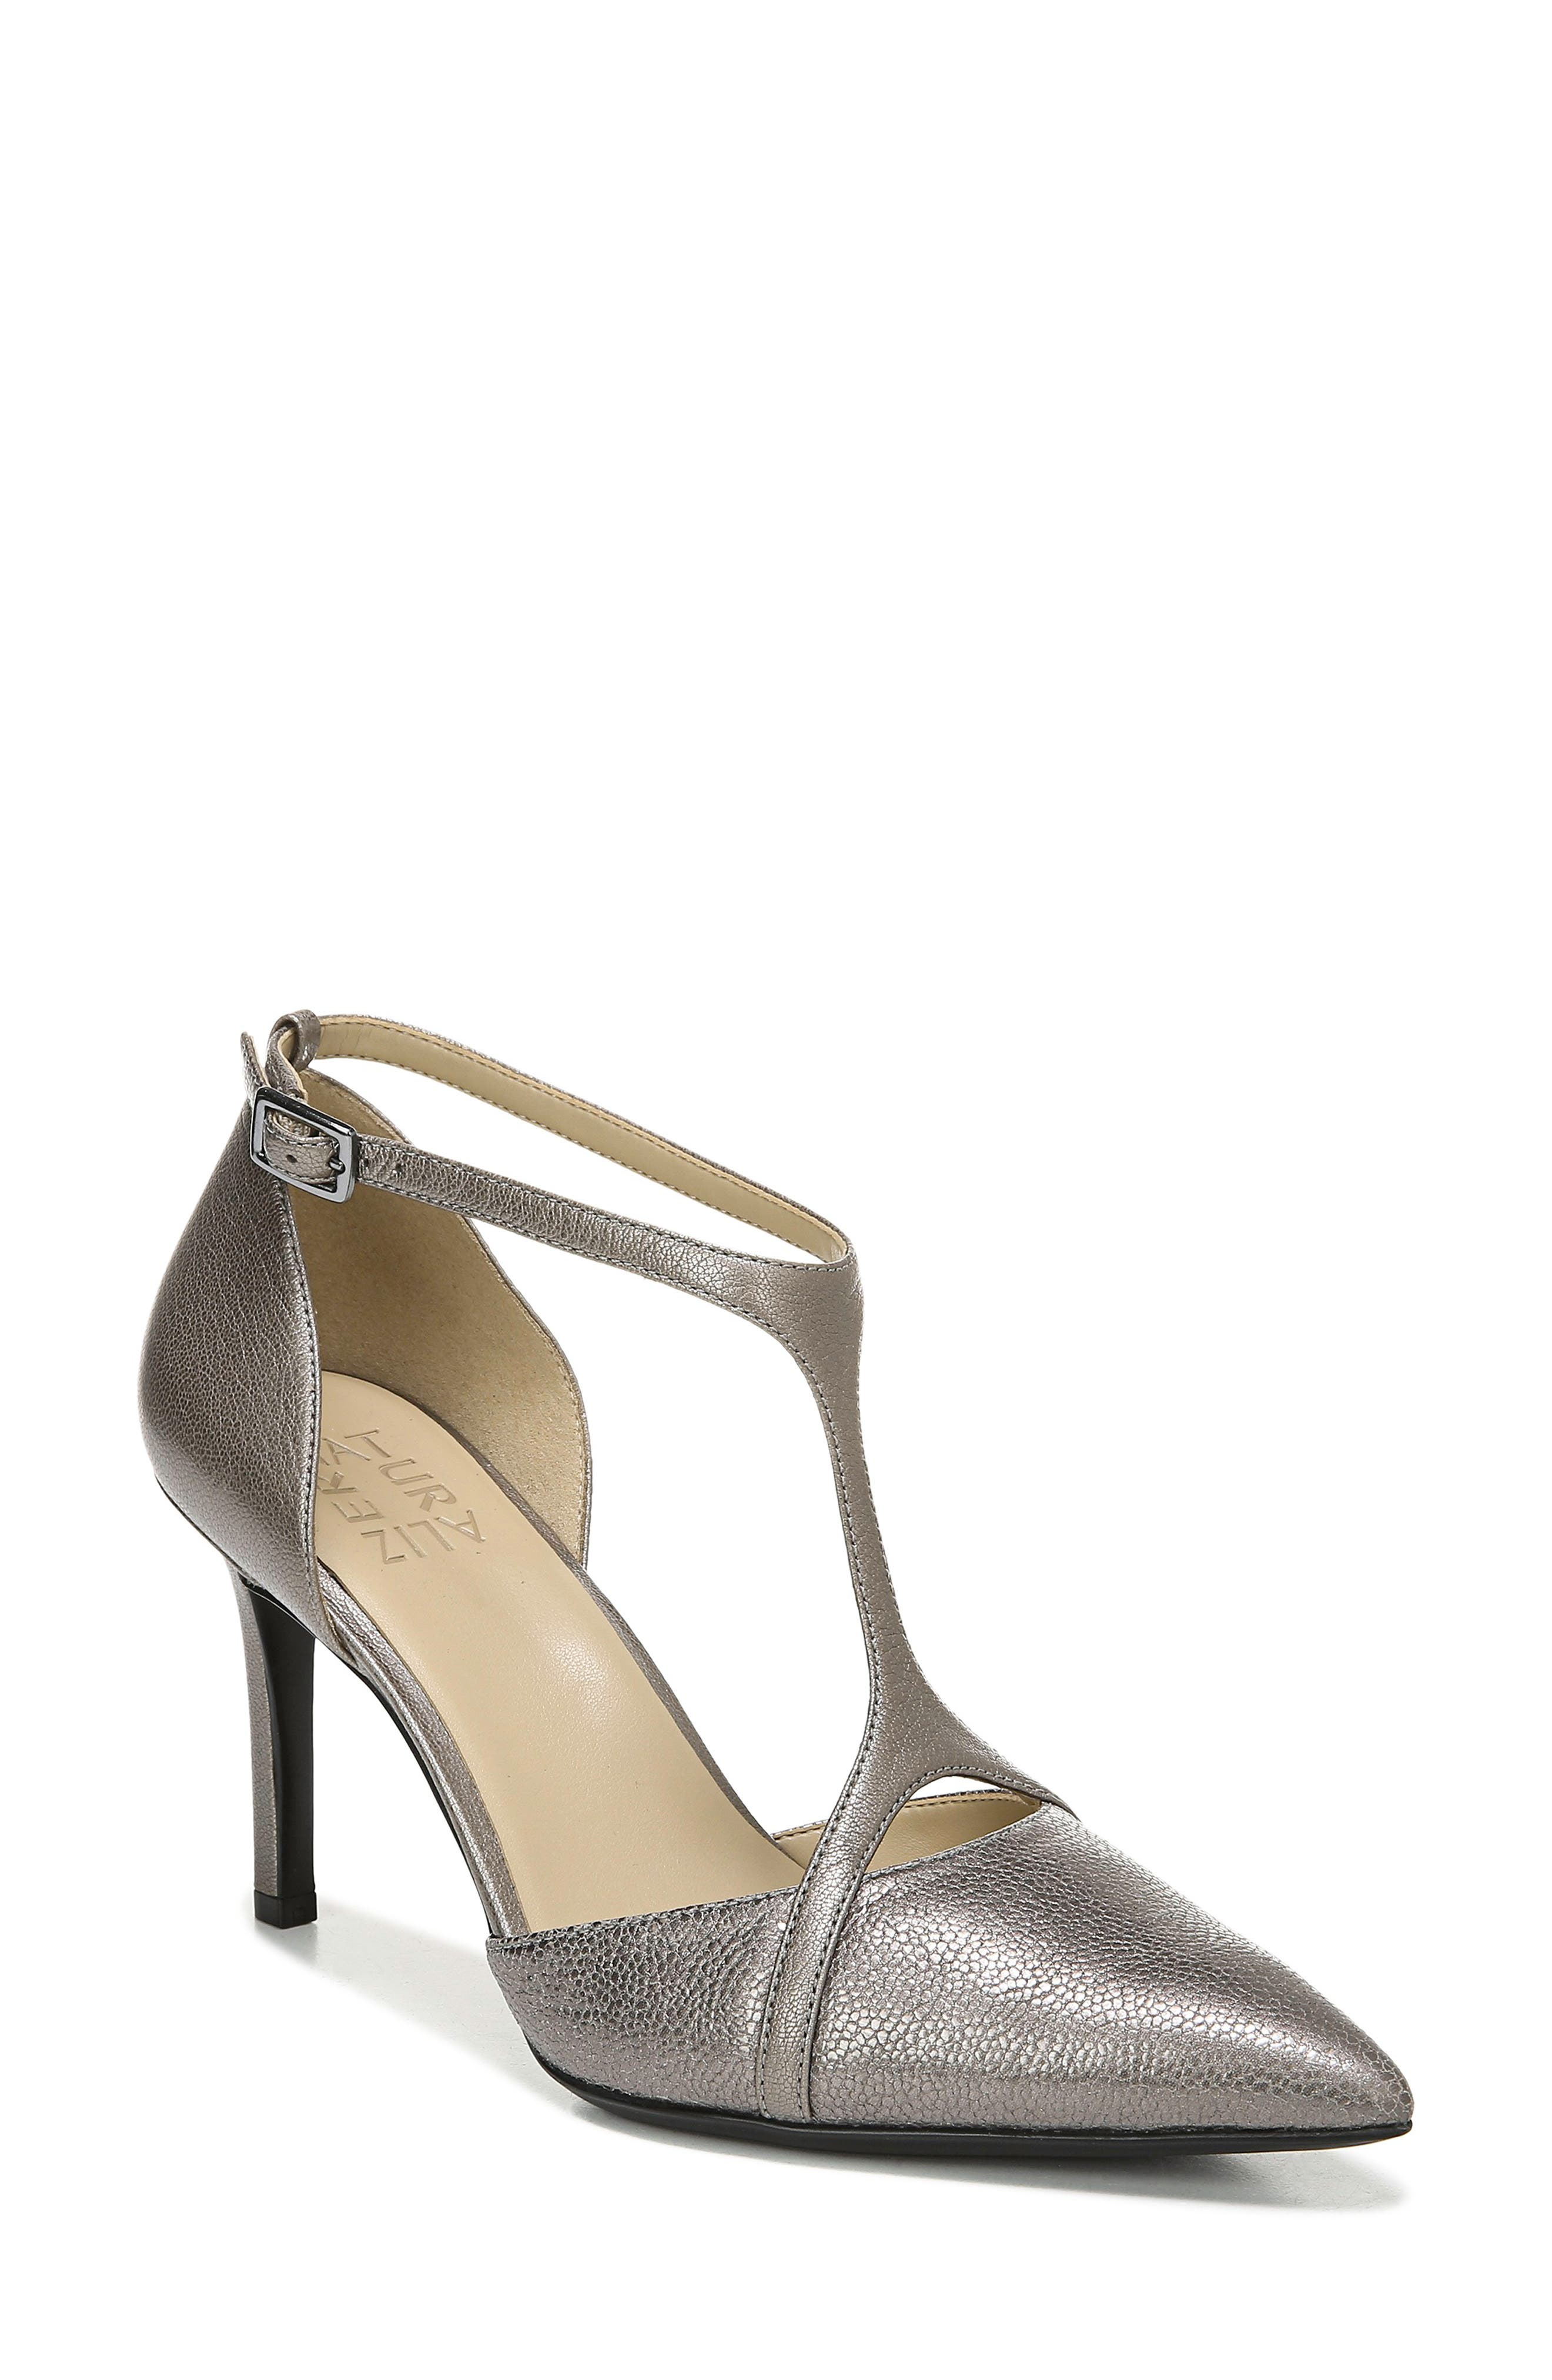 Naturalizer Andrea Pump, Metallic